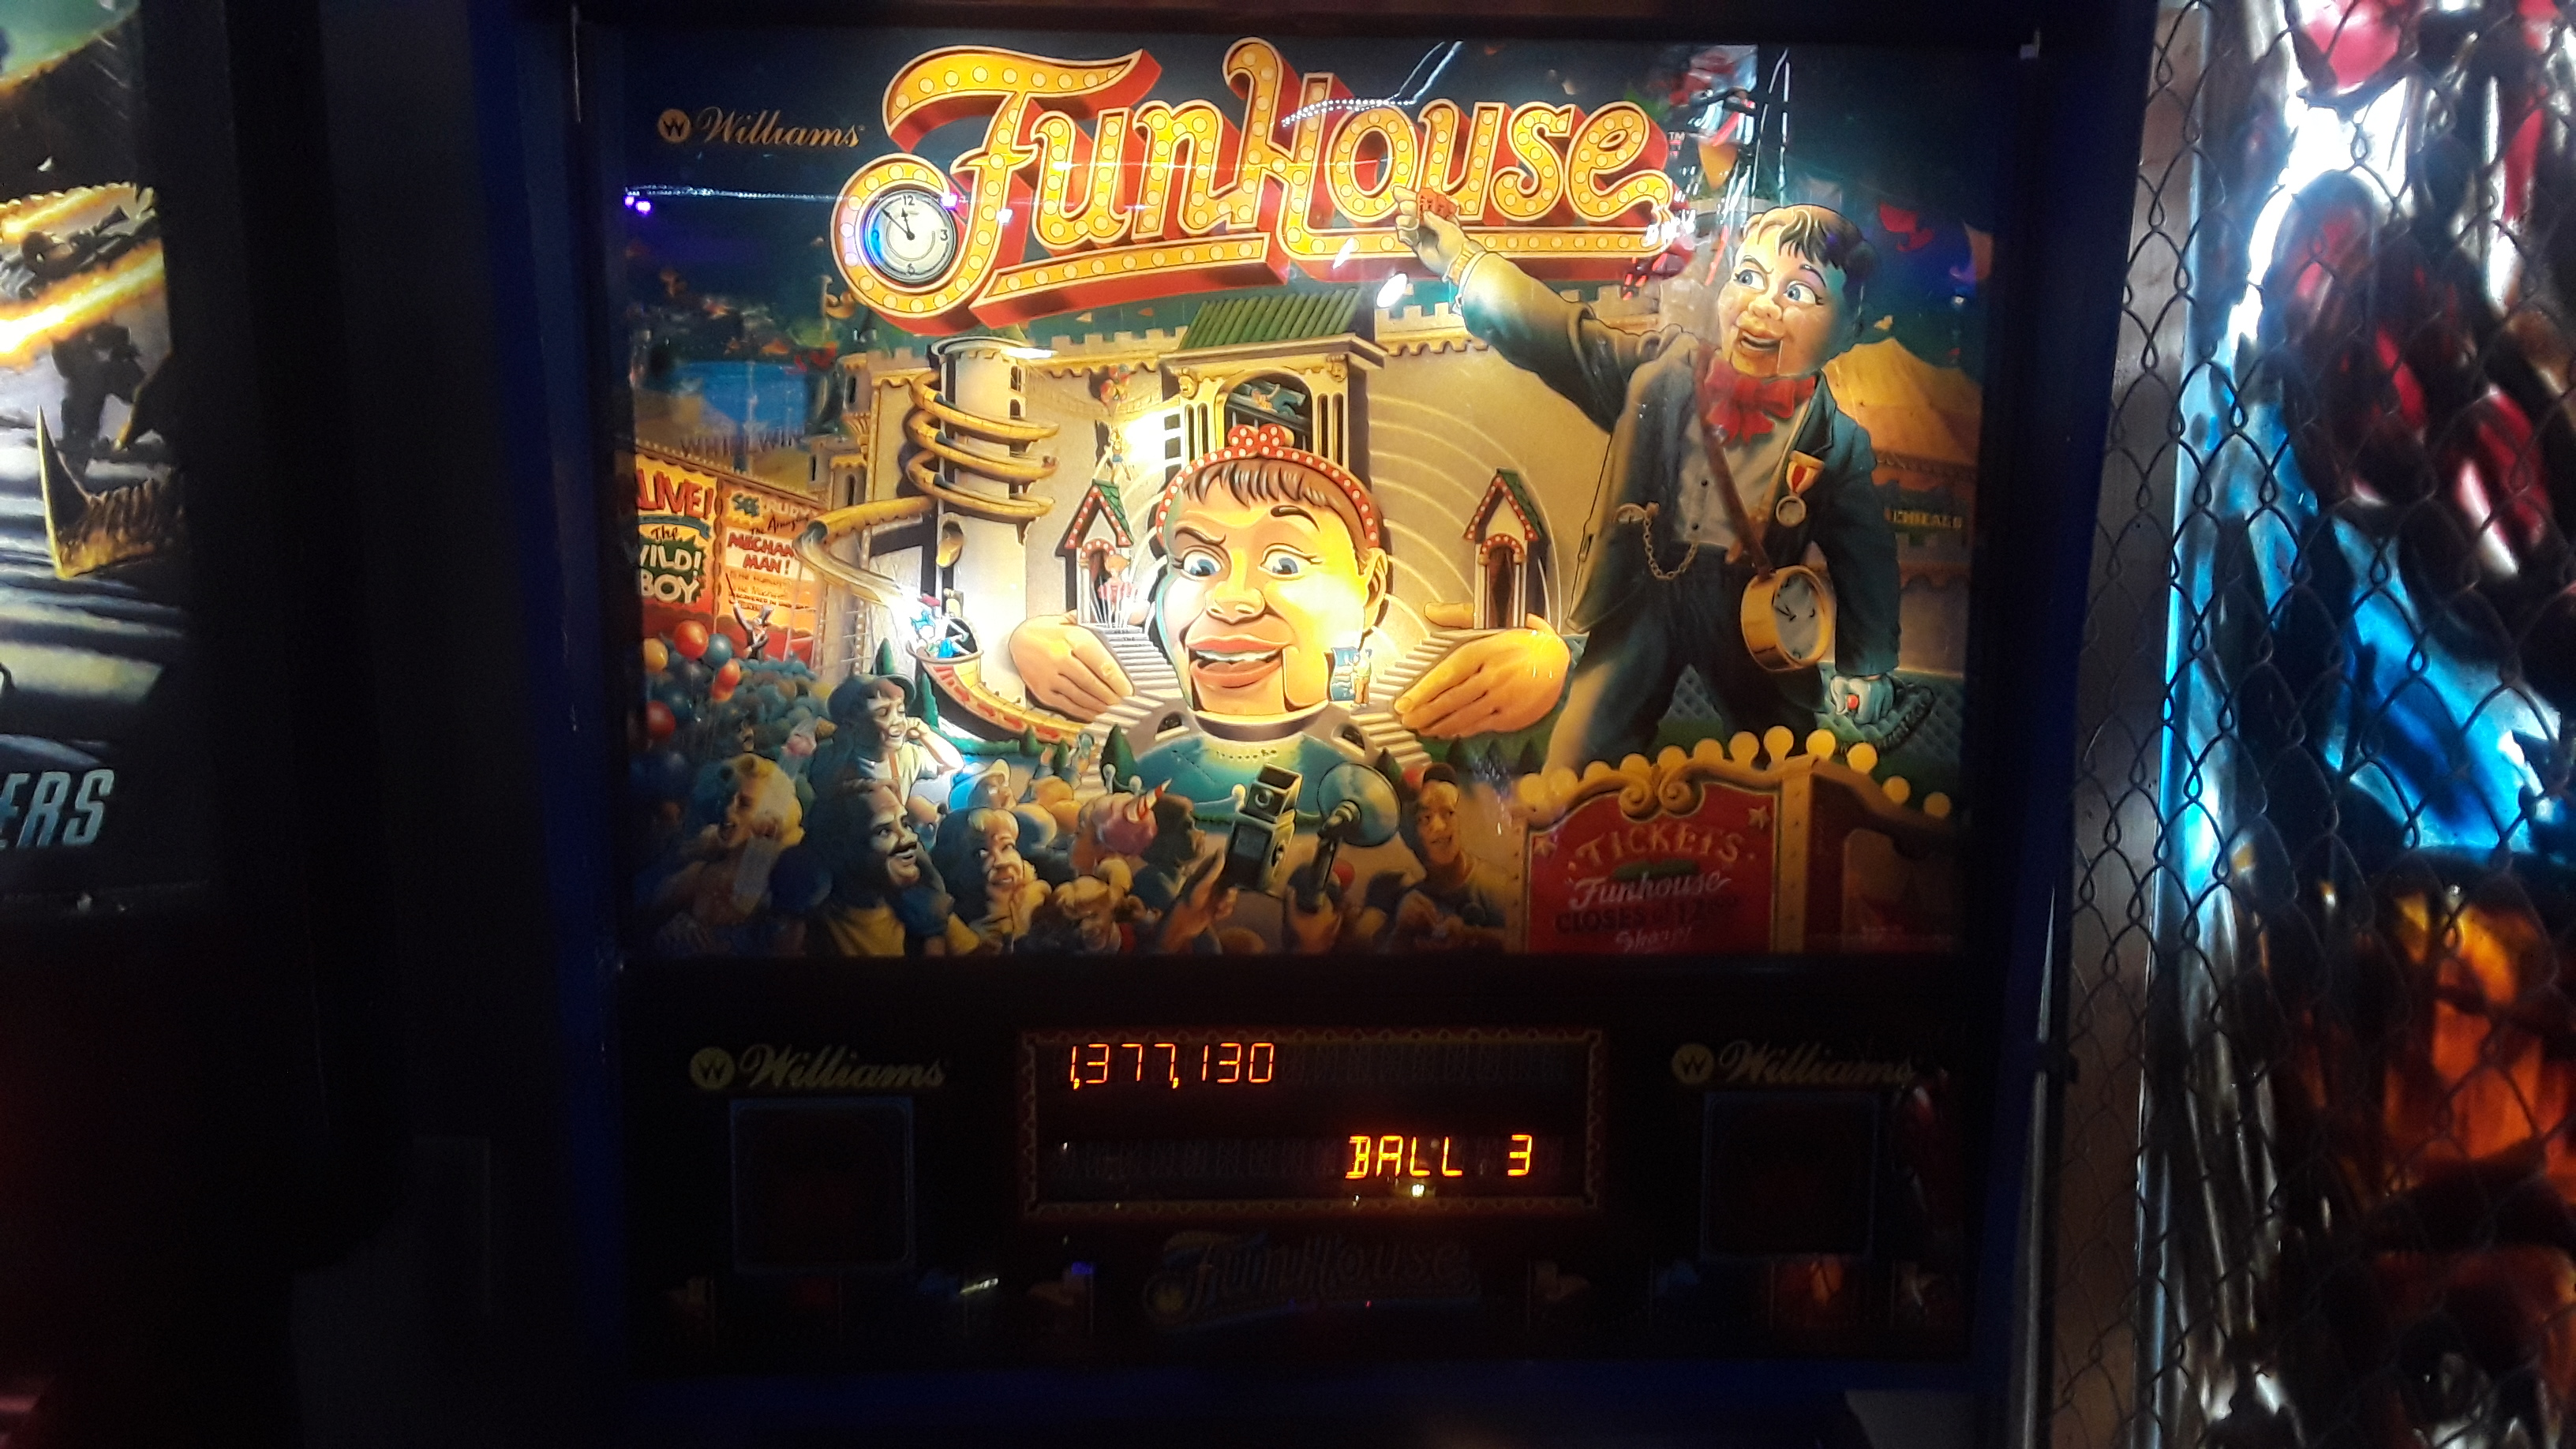 FunHouse 1,377,130 points